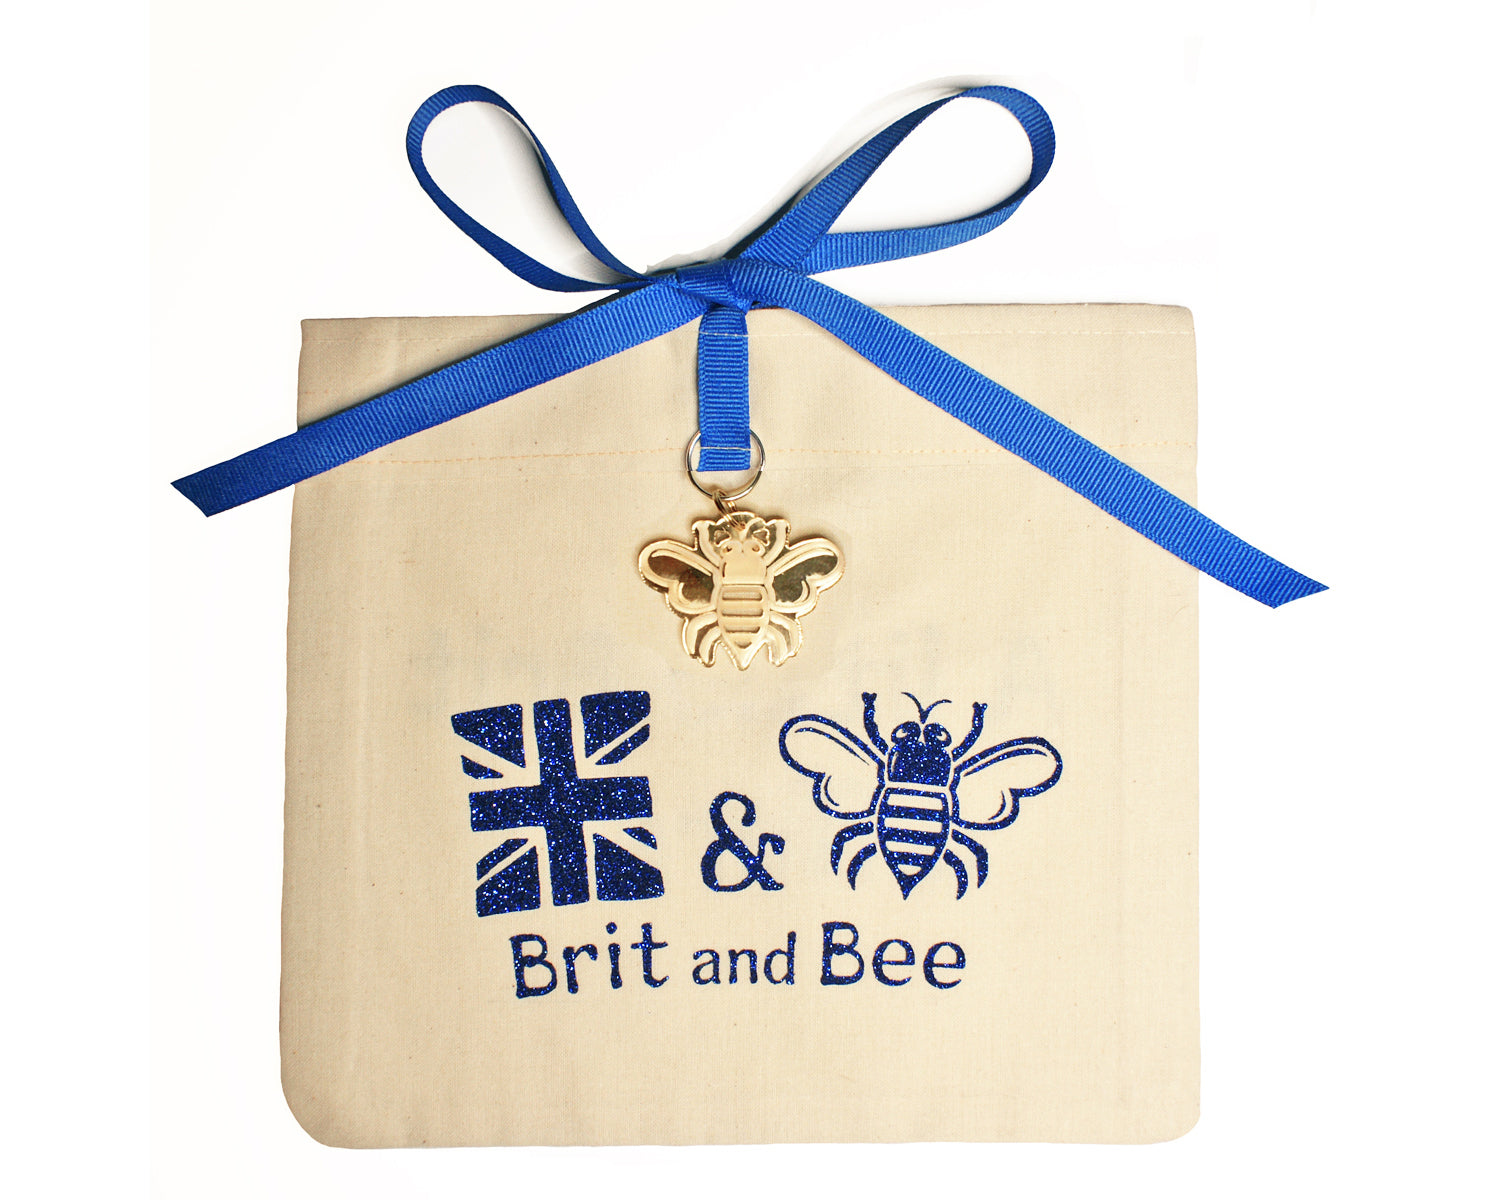 Brit and Bee Logo Decal - Alpha Phi Omega